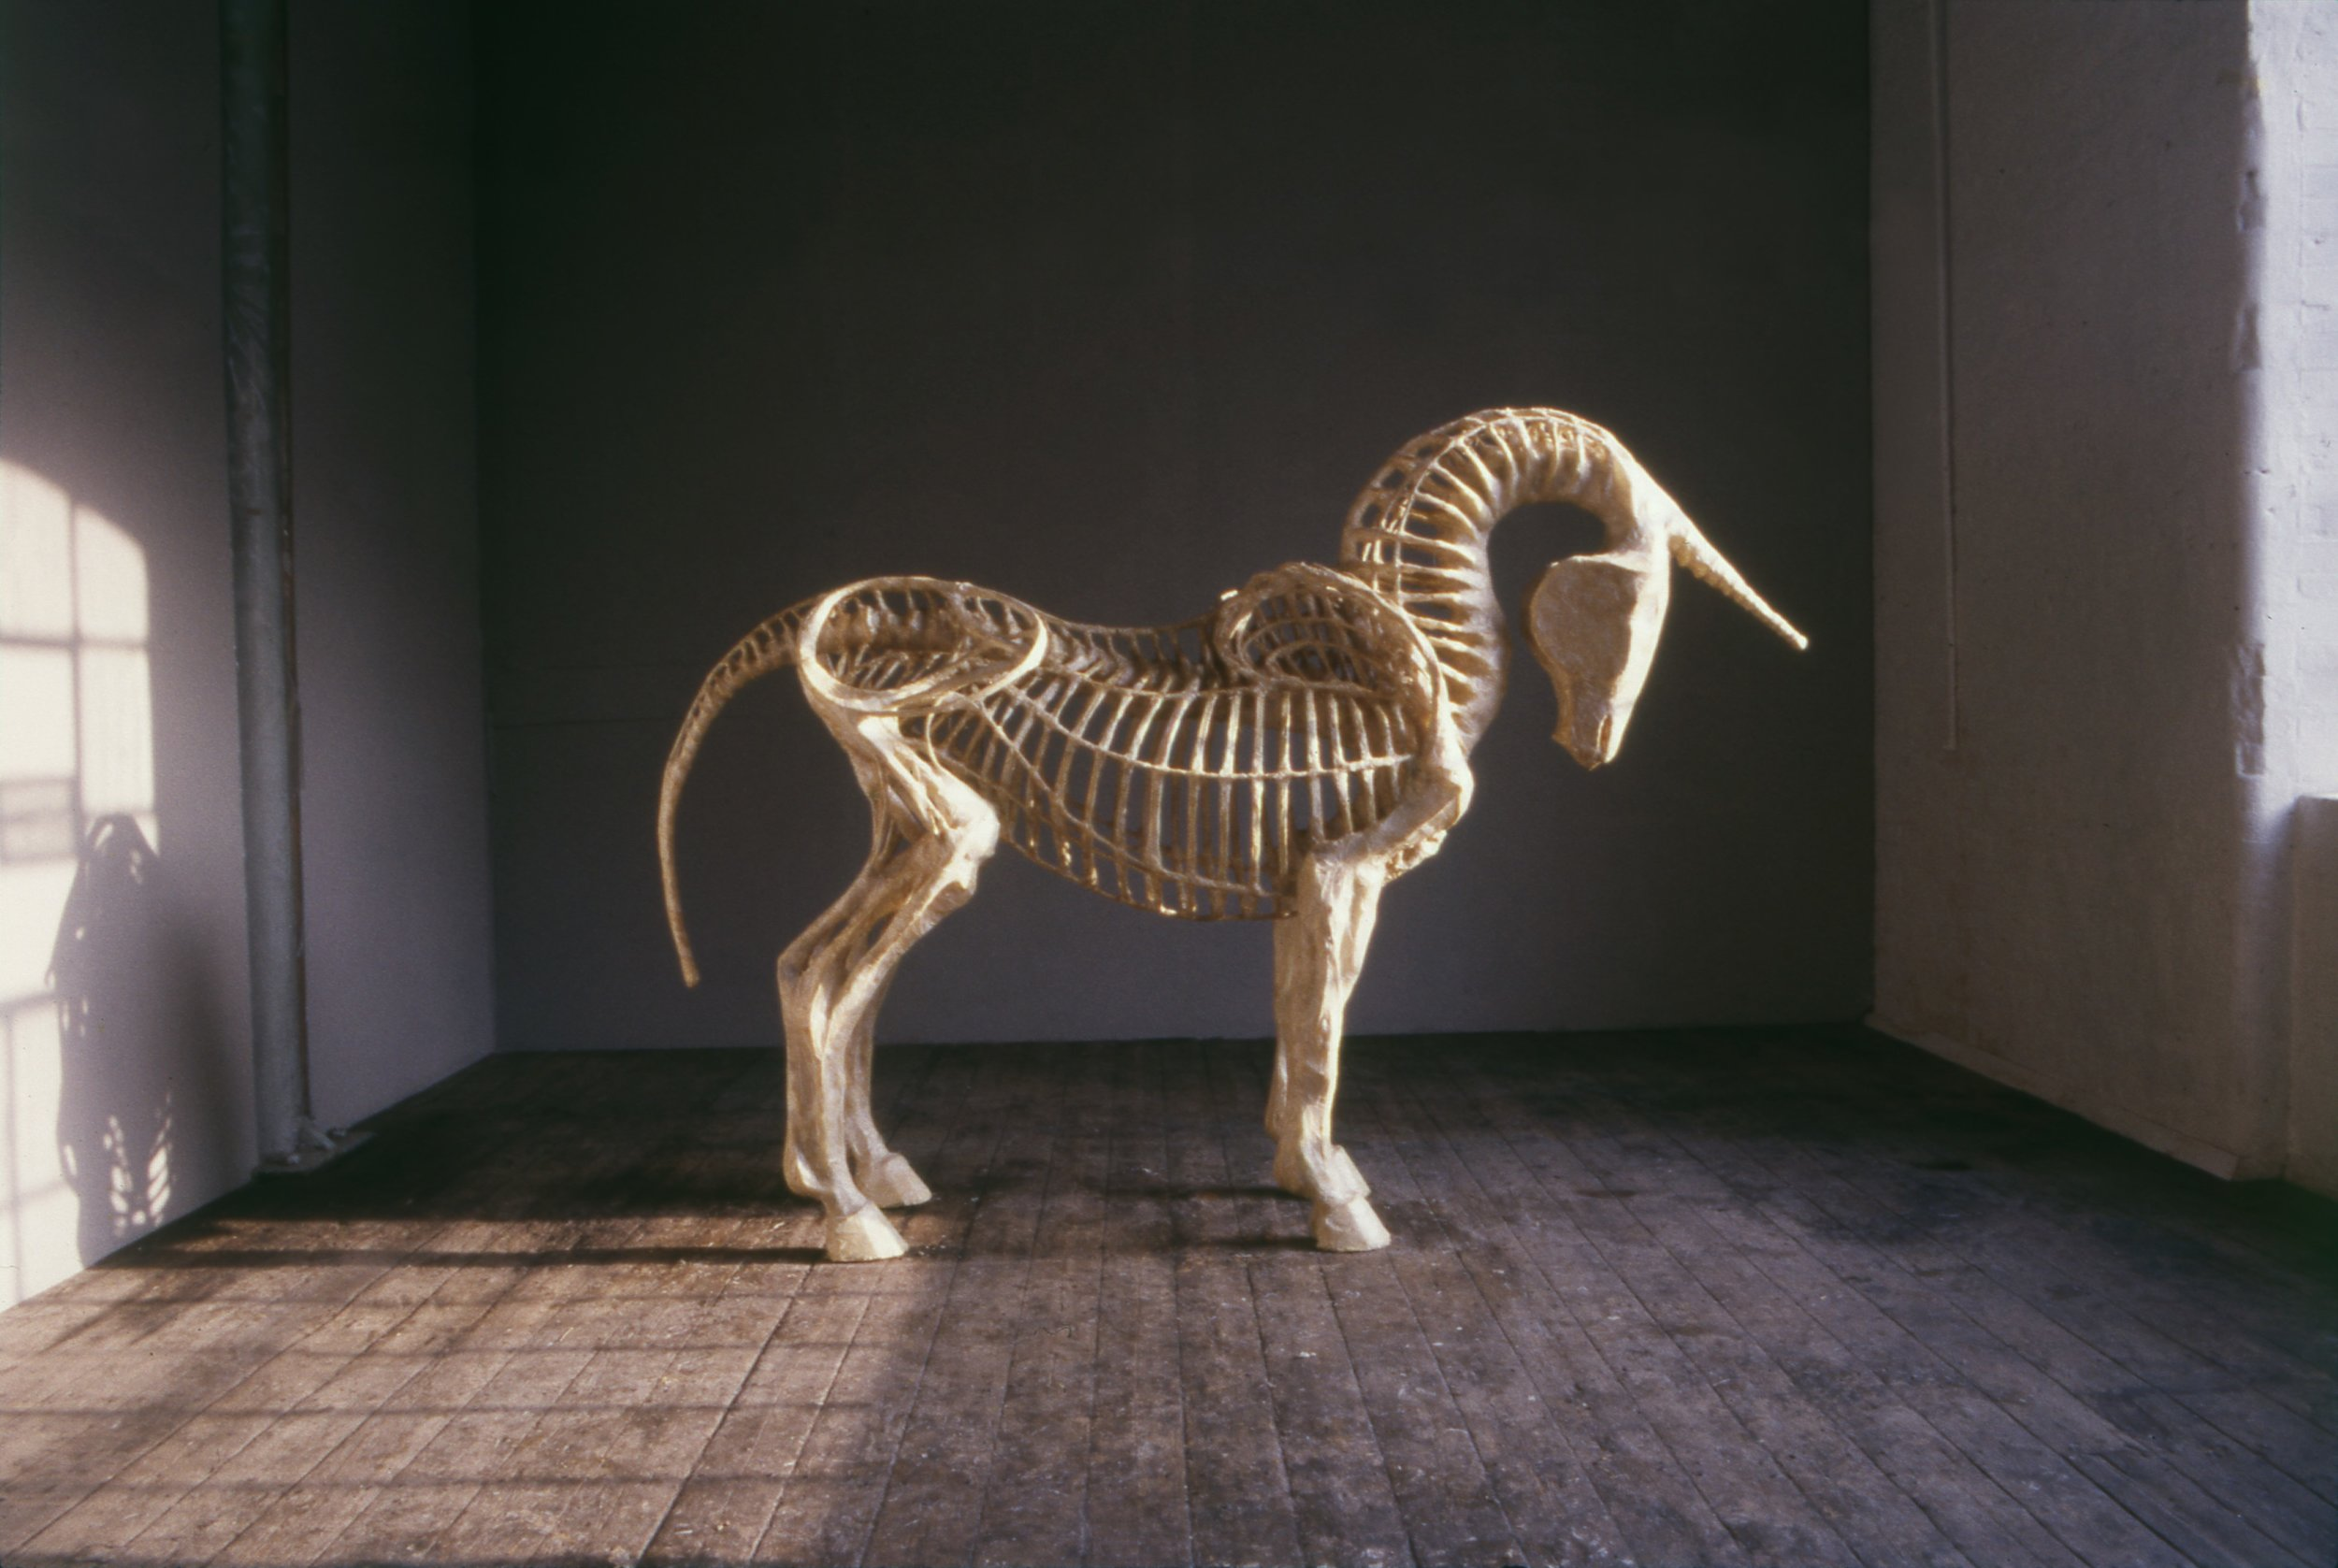 Unicorn , Cathy de Monchaux, 1985 © Cathy de Monchaux, All Rights Reserved.